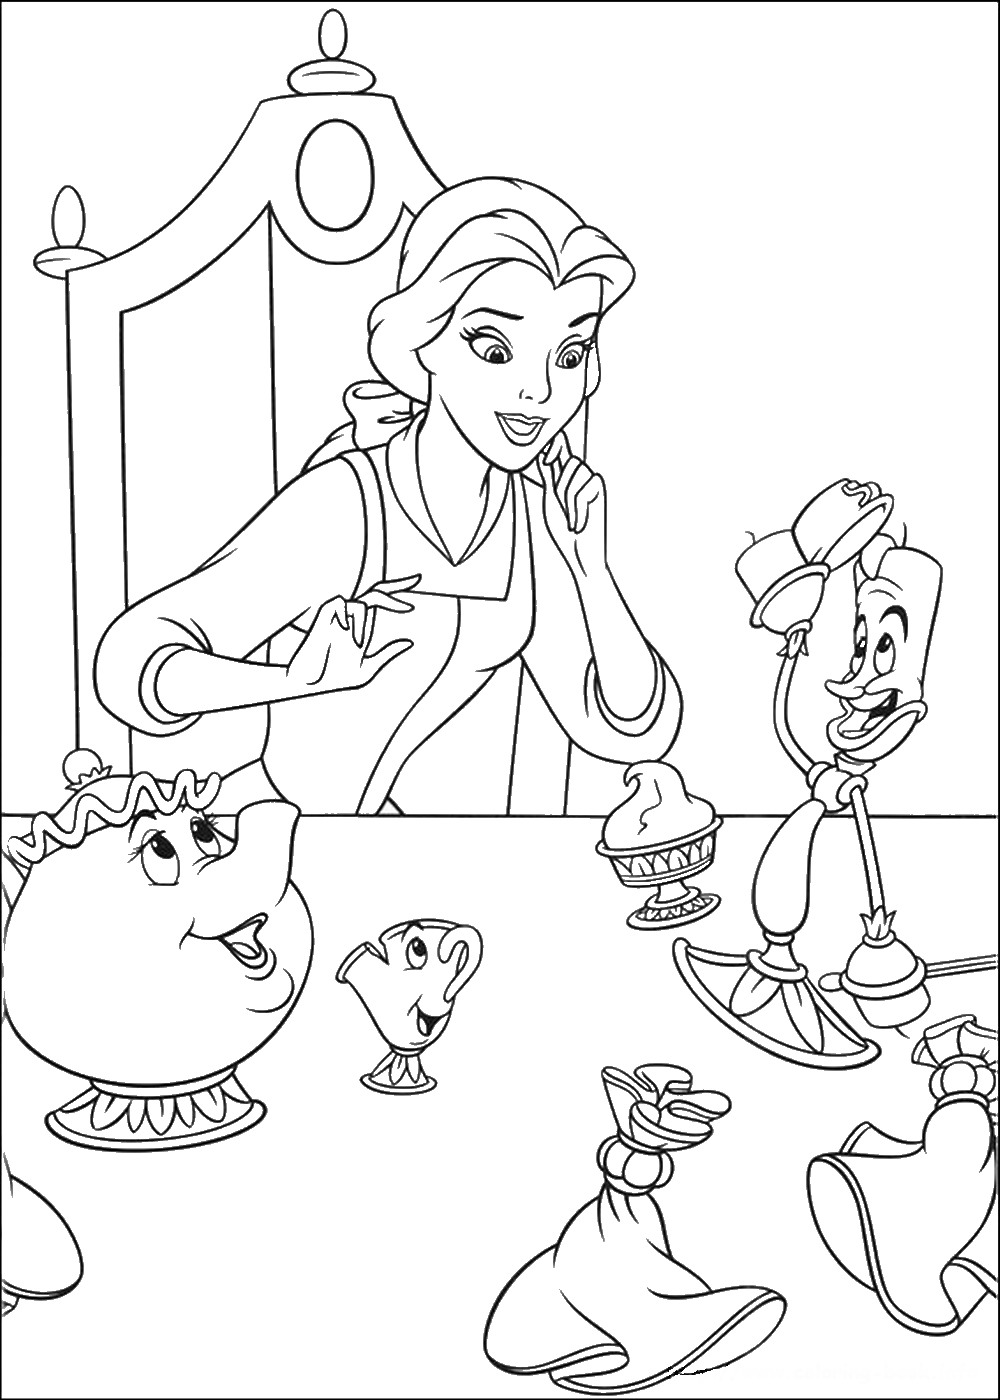 beauty and the beast colouring pages beauty and the beast coloringcolorcom beauty the beast pages colouring and